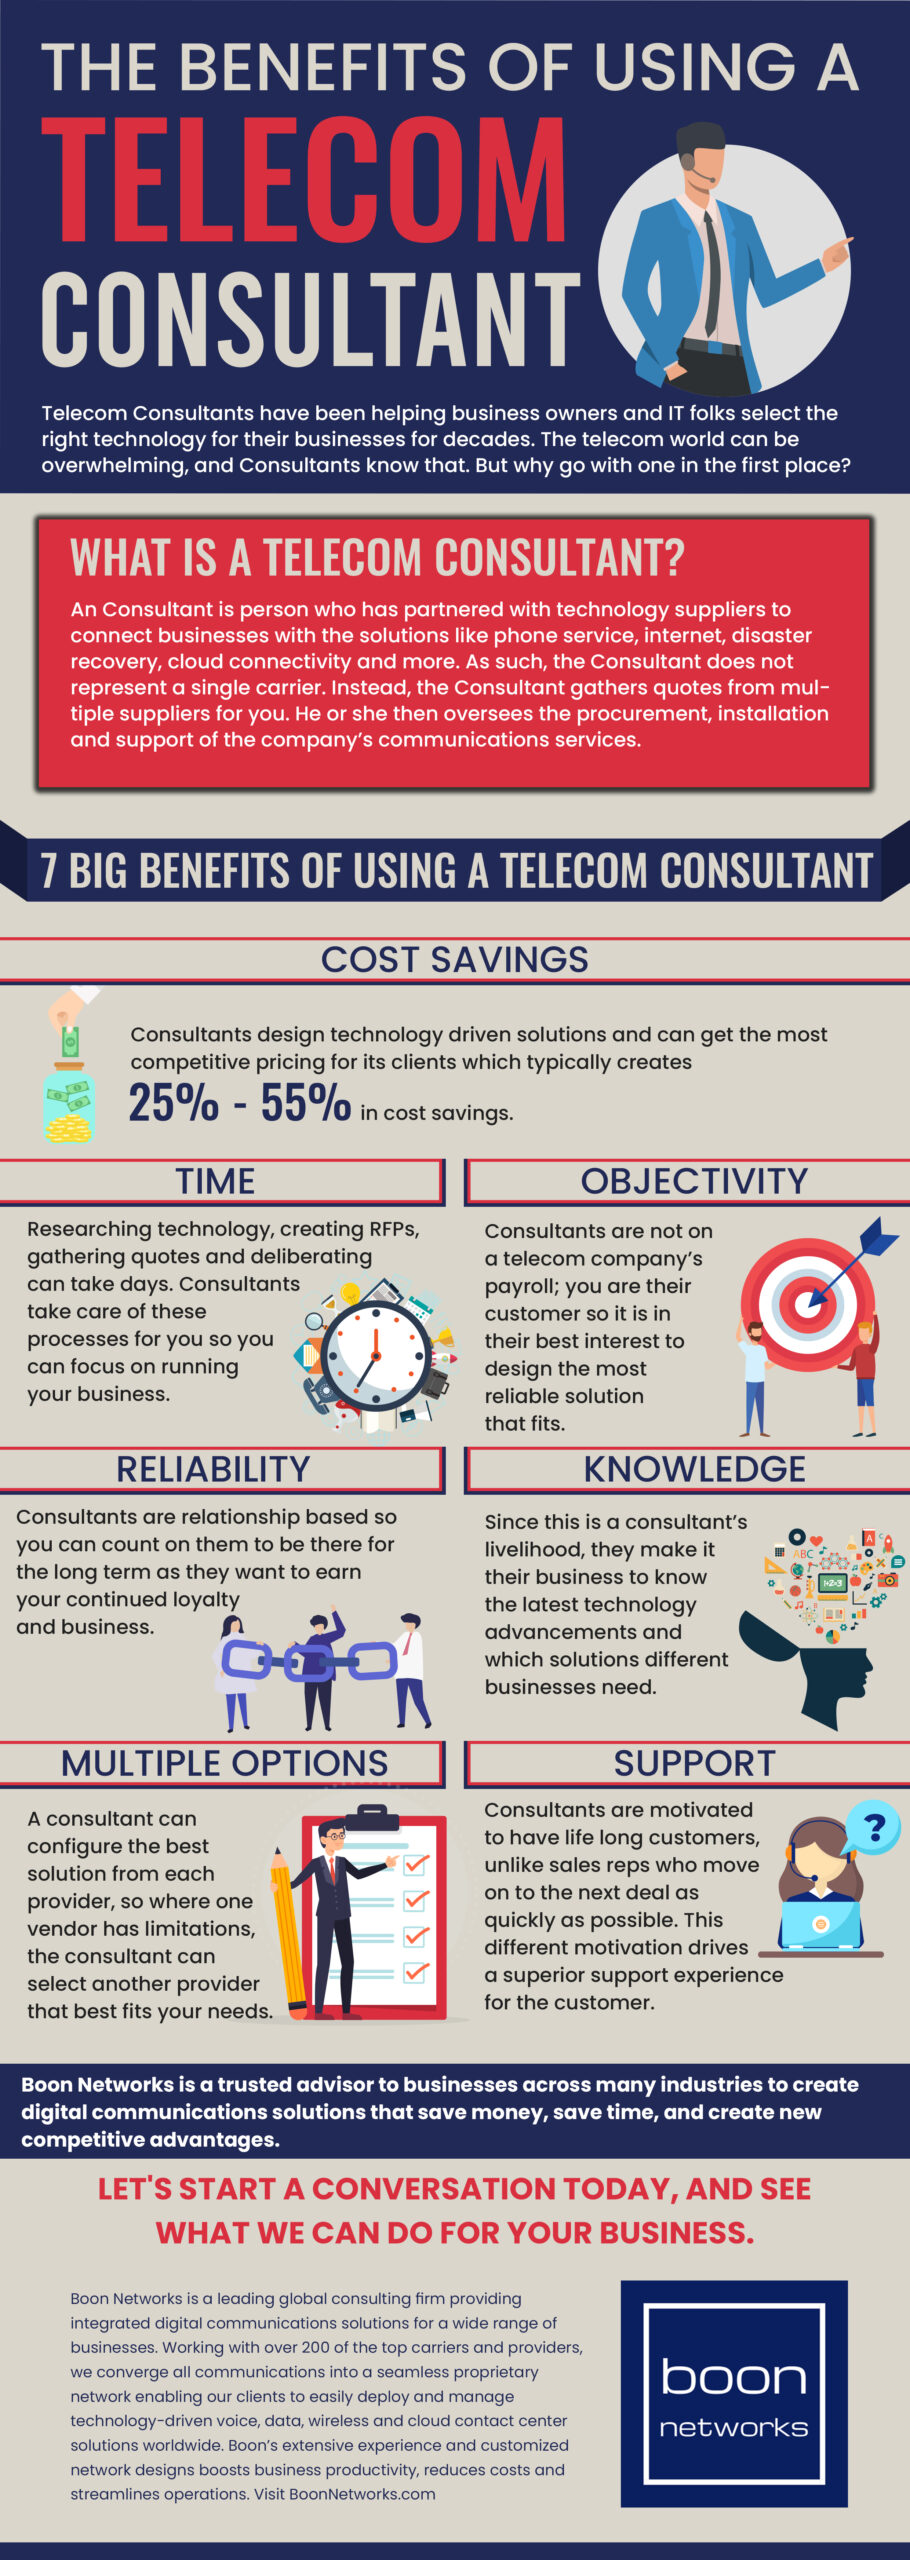 The Benefits of Using a Telecom Consultant Infographic